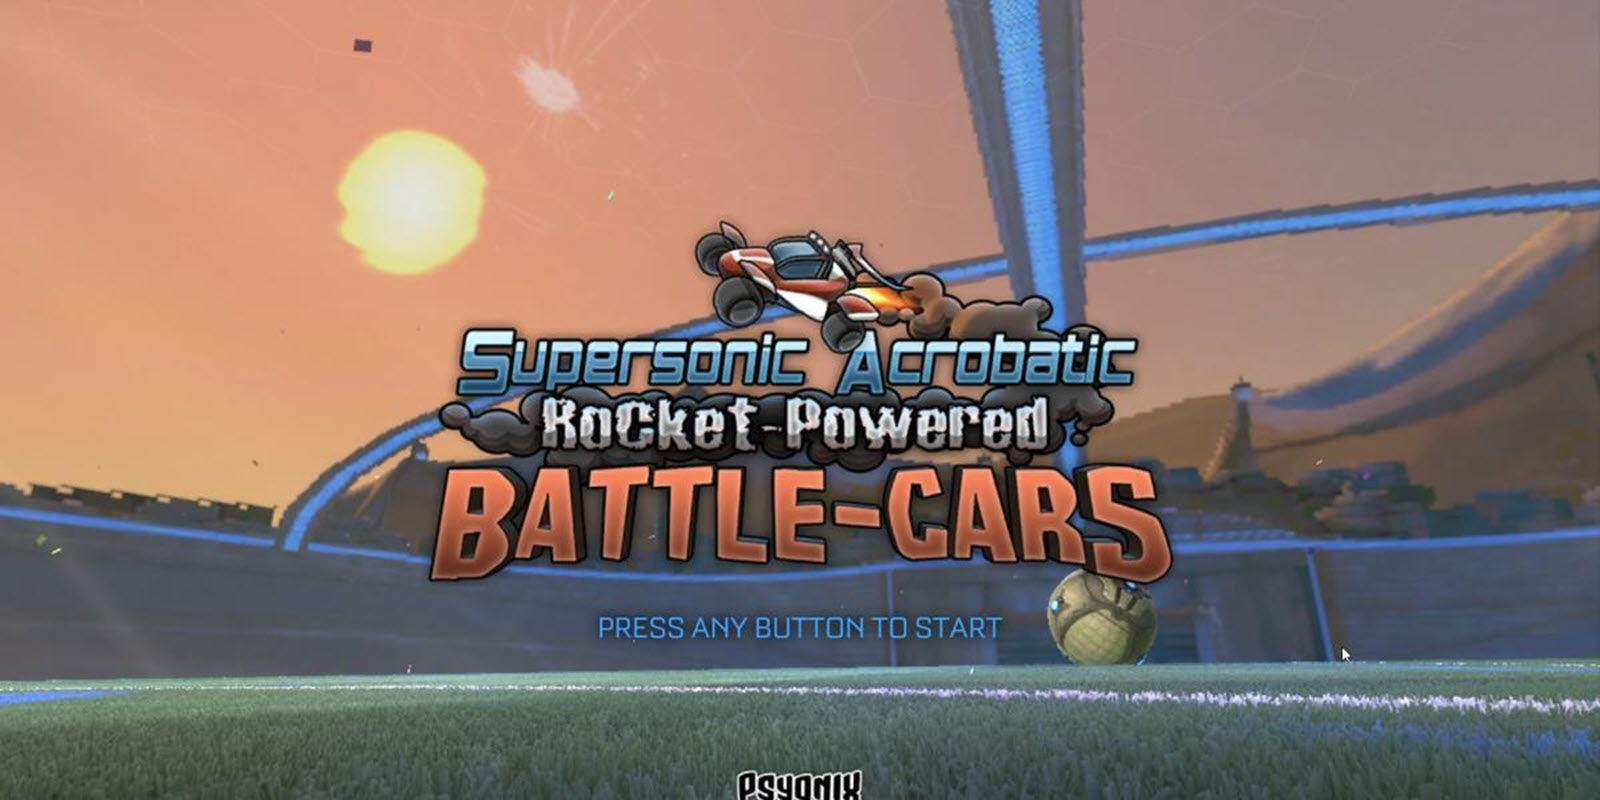 The Supersonic Acrobatic Rocket-Powered Battle-Cars title screen.